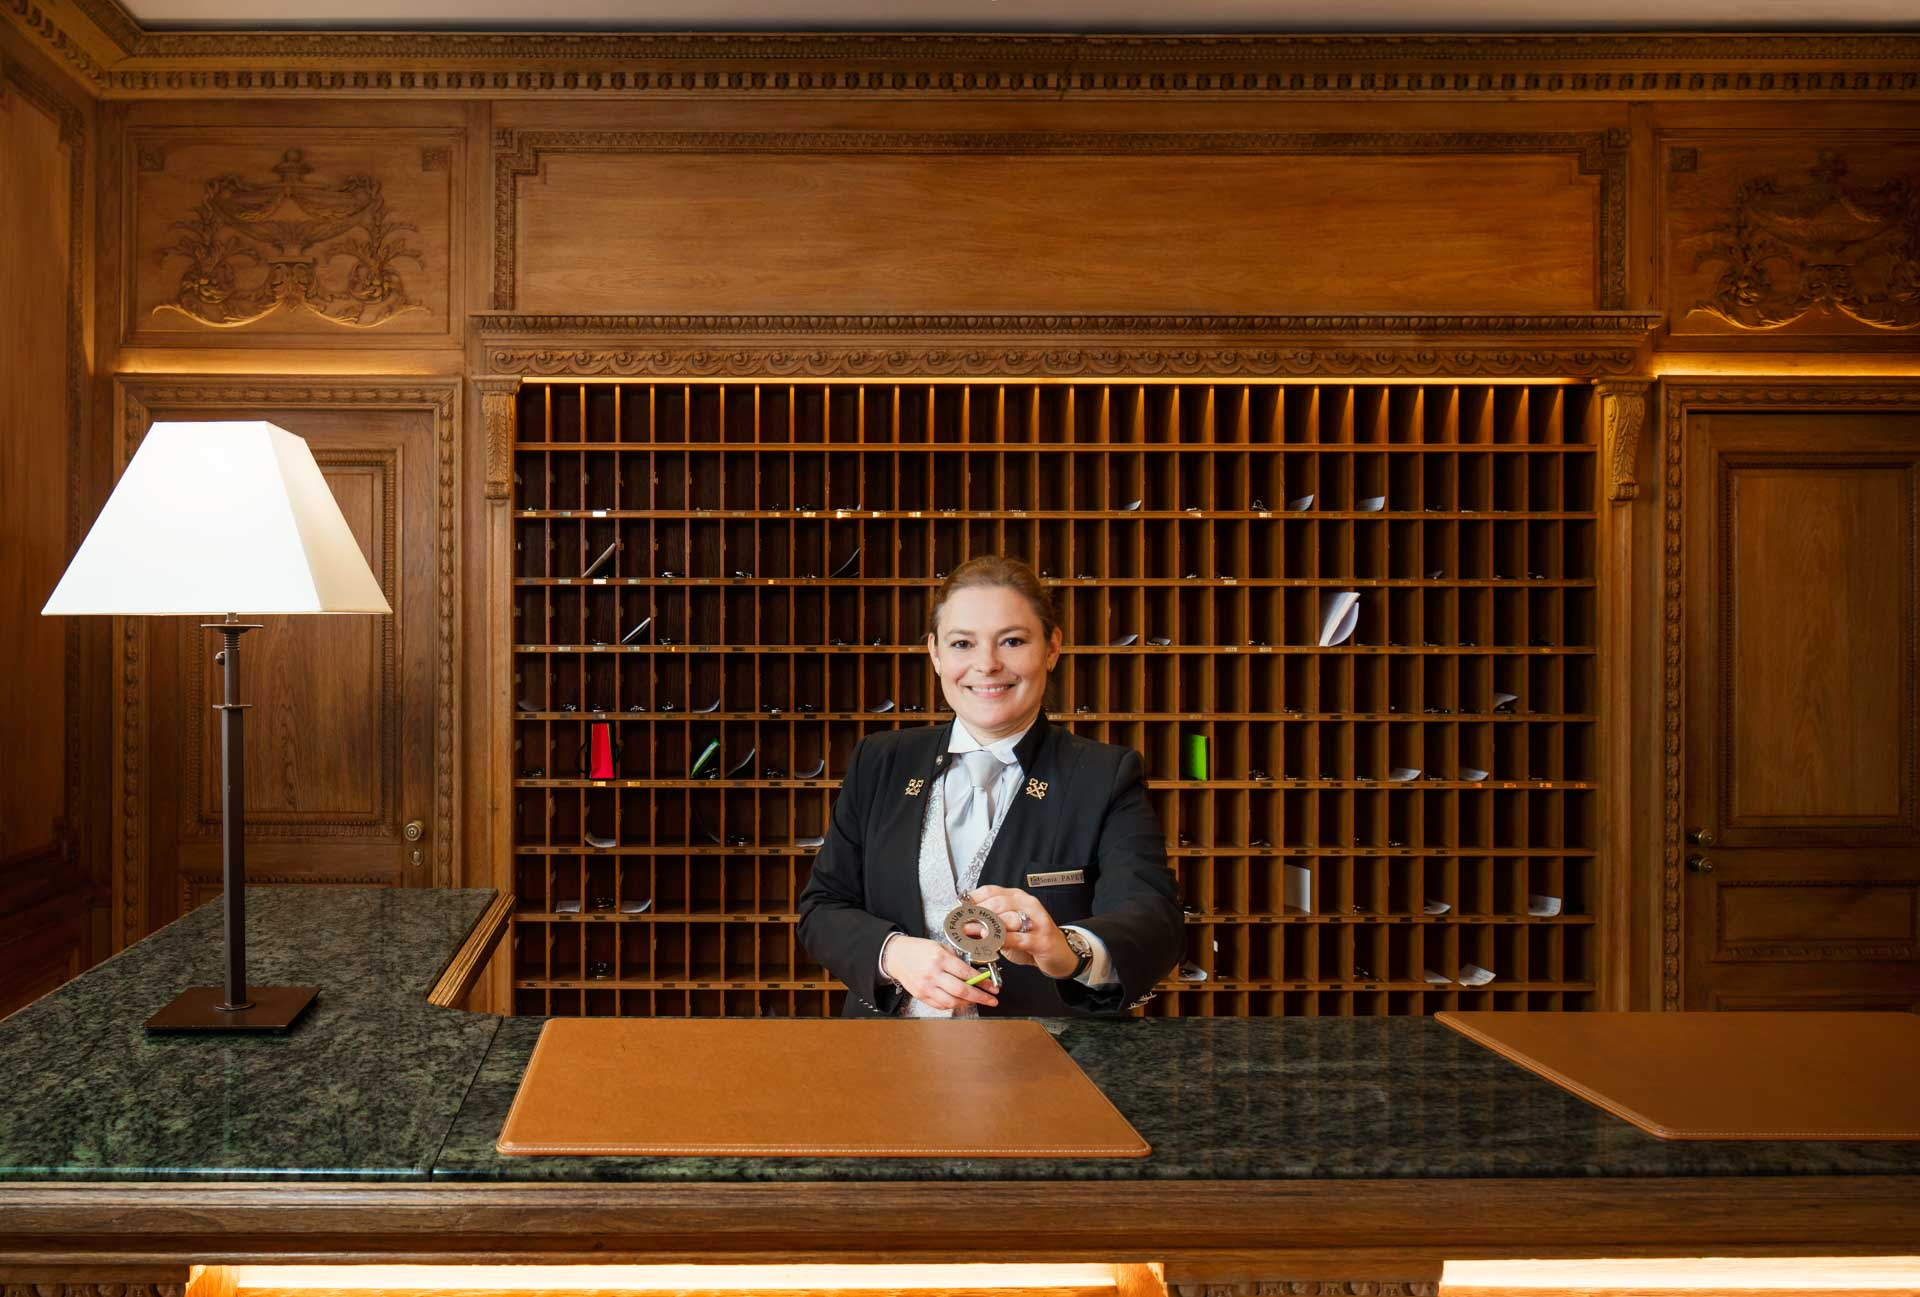 Head Concierge at Hotel Le Bristol Paris